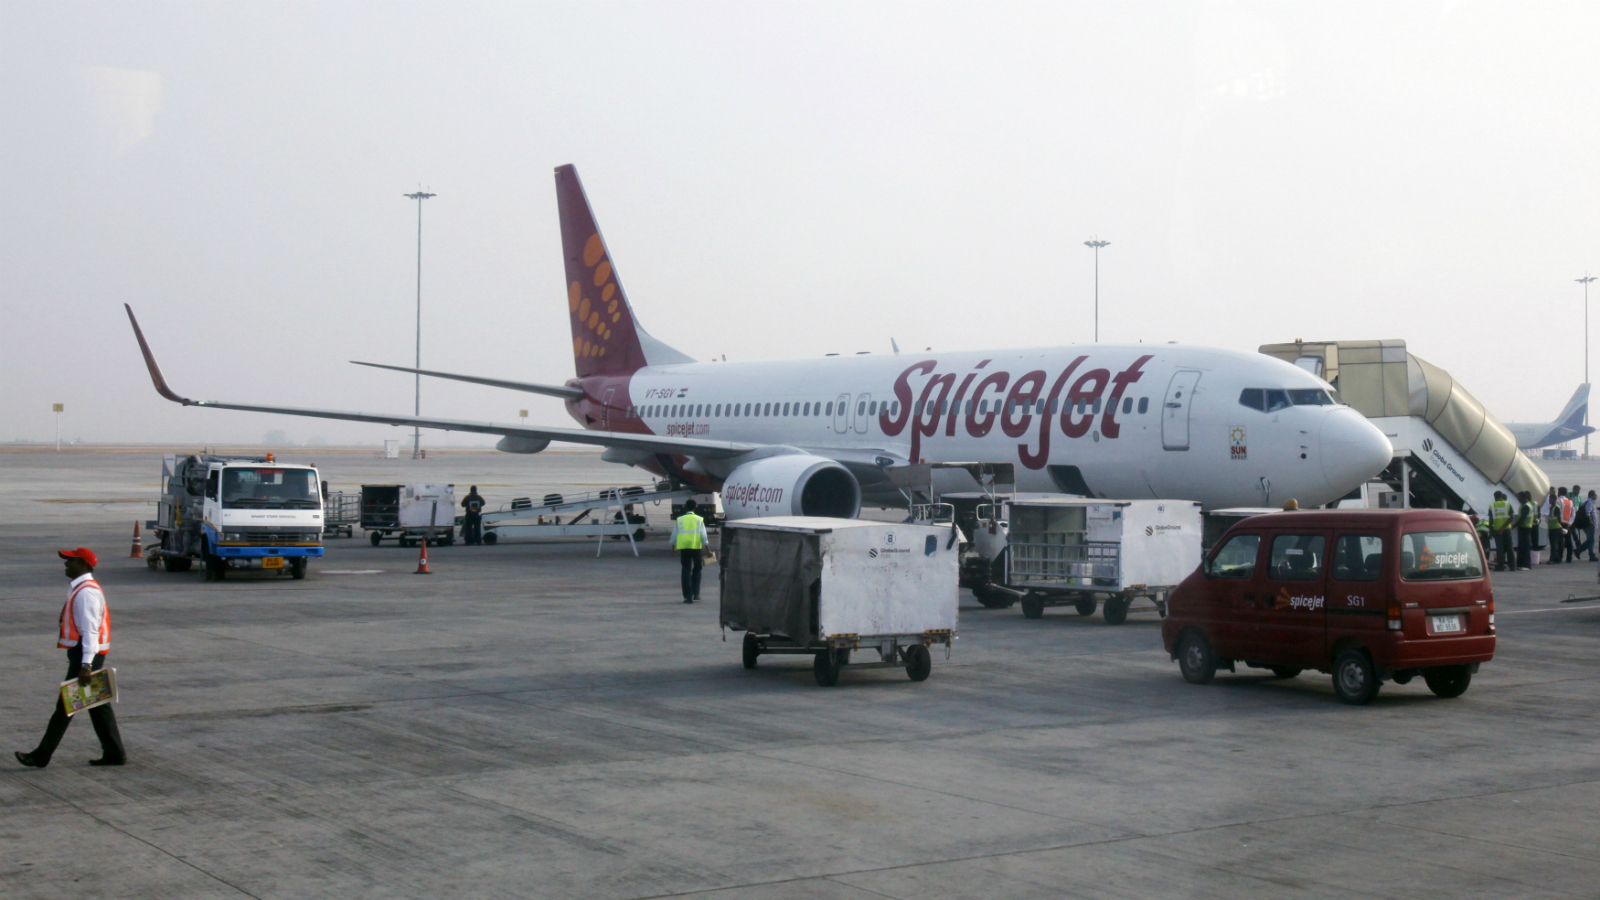 Ground staff work near a SpiceJet Airlines aircraft parked on the tarmac at Bengaluru International Airport in Bangalore March 5, 2012.